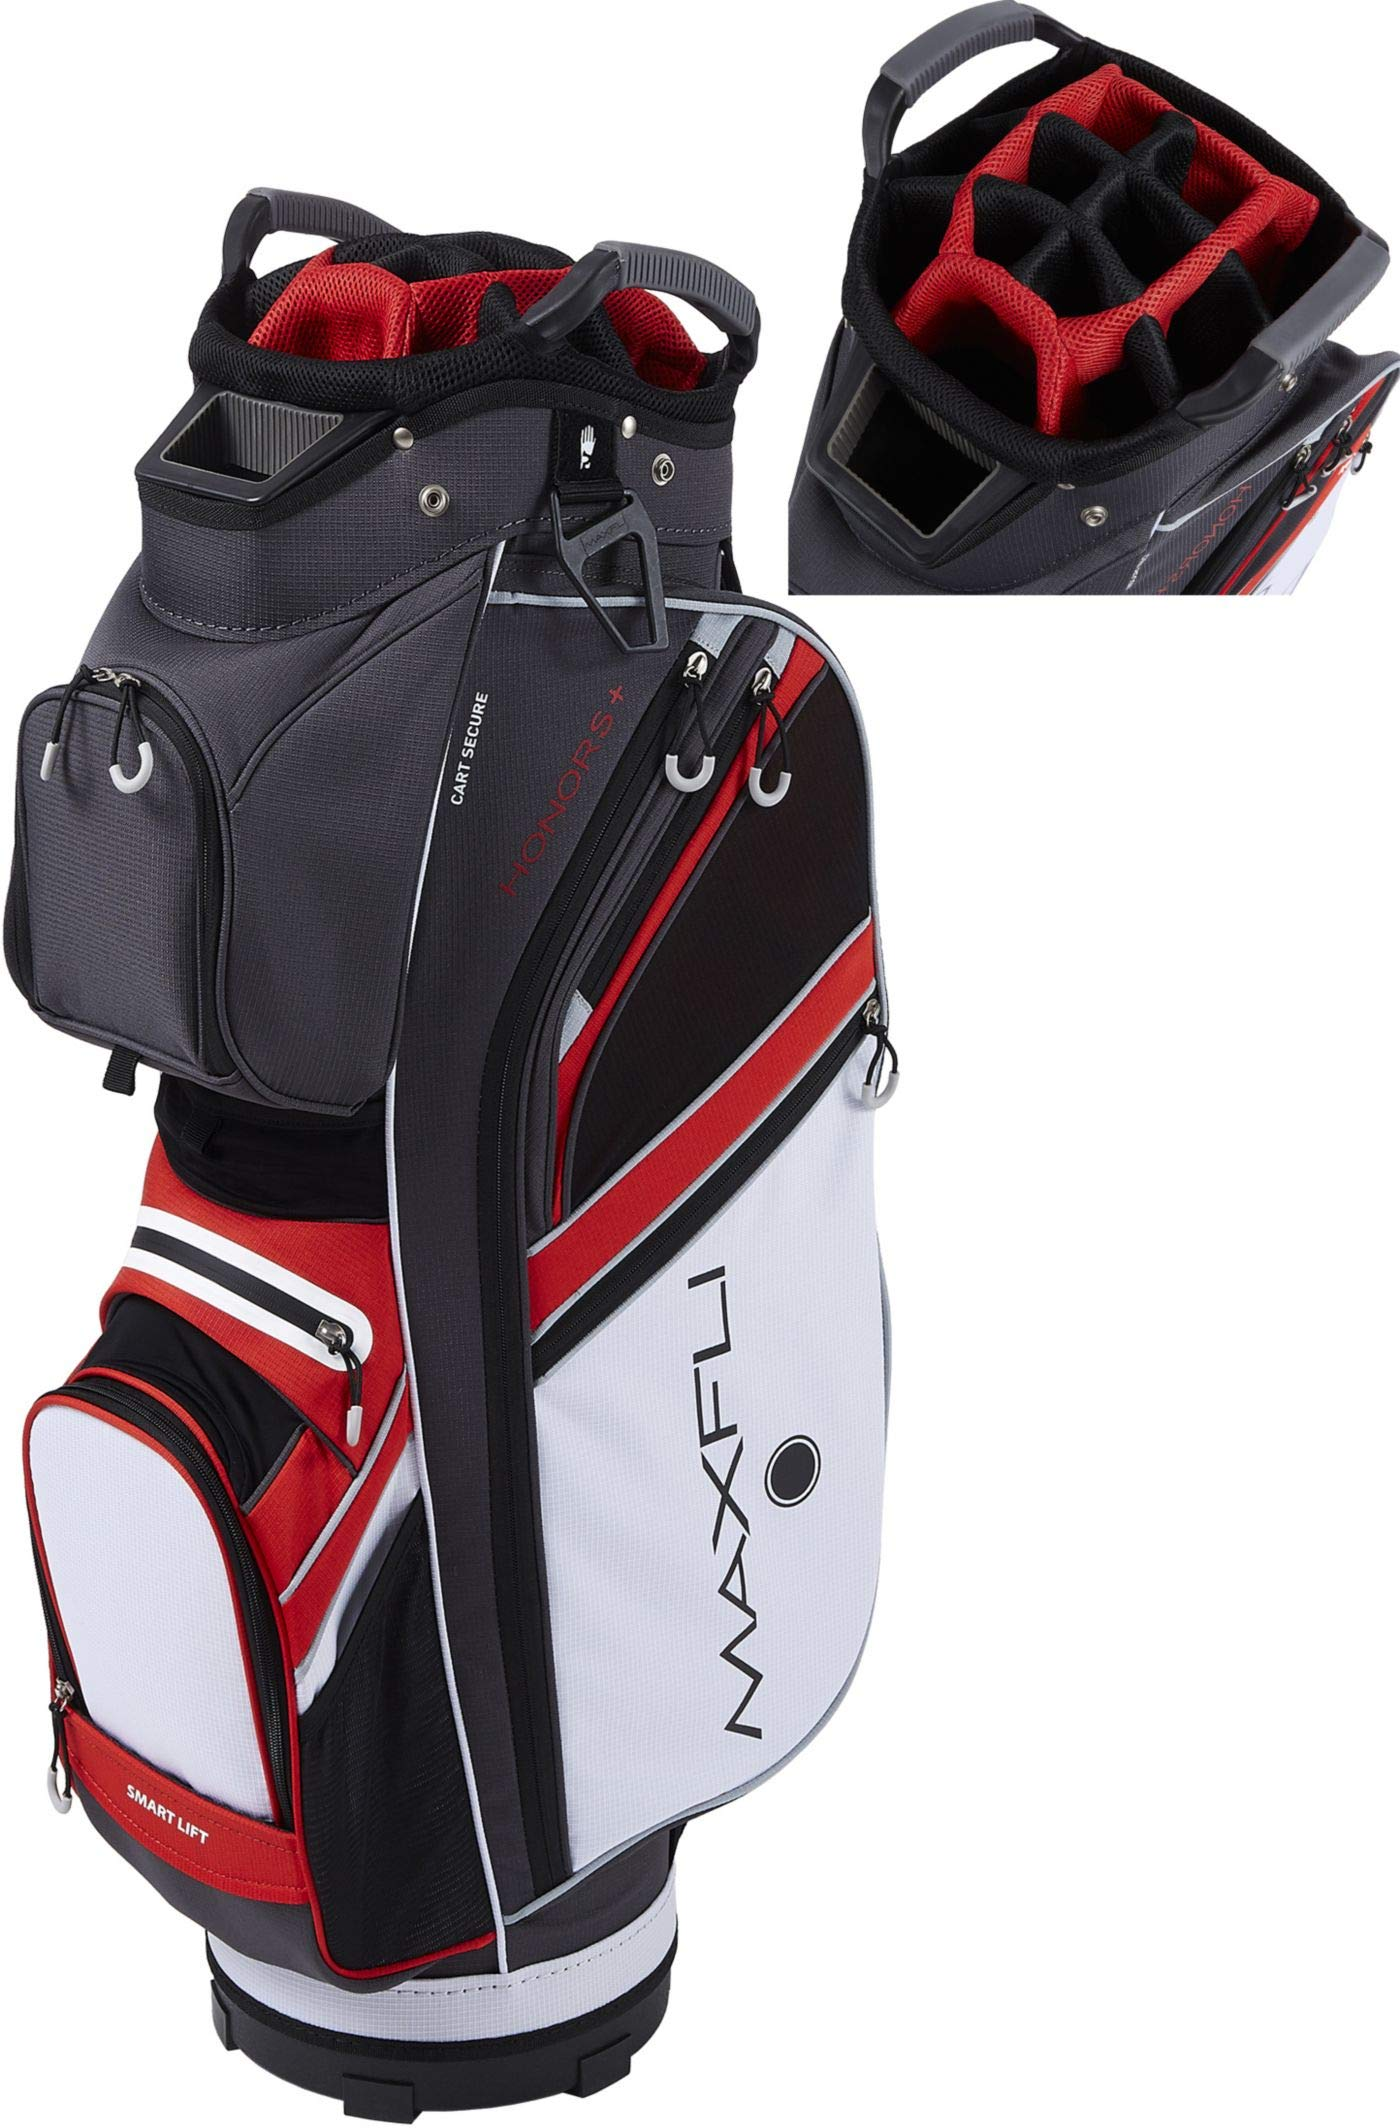 Maxfli 2019 Honors Plus Golf Cart Bag Lightweight 14-Way Top 3 Dividers w/Insulated Pocket (Black/Red/White)